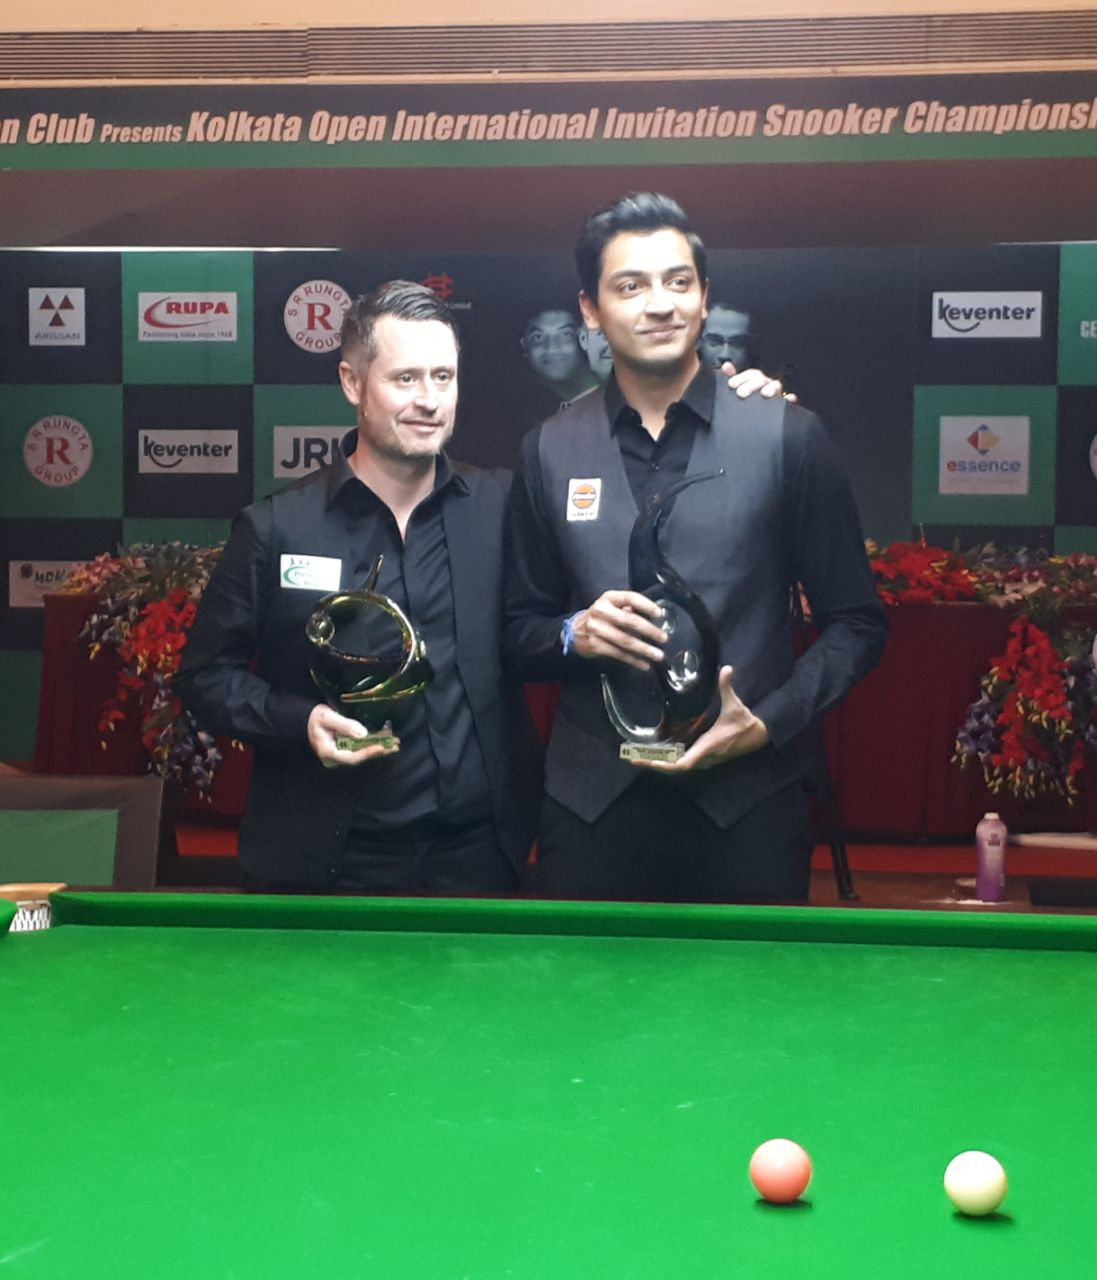 Aditya wins the Kolkata Open 2018